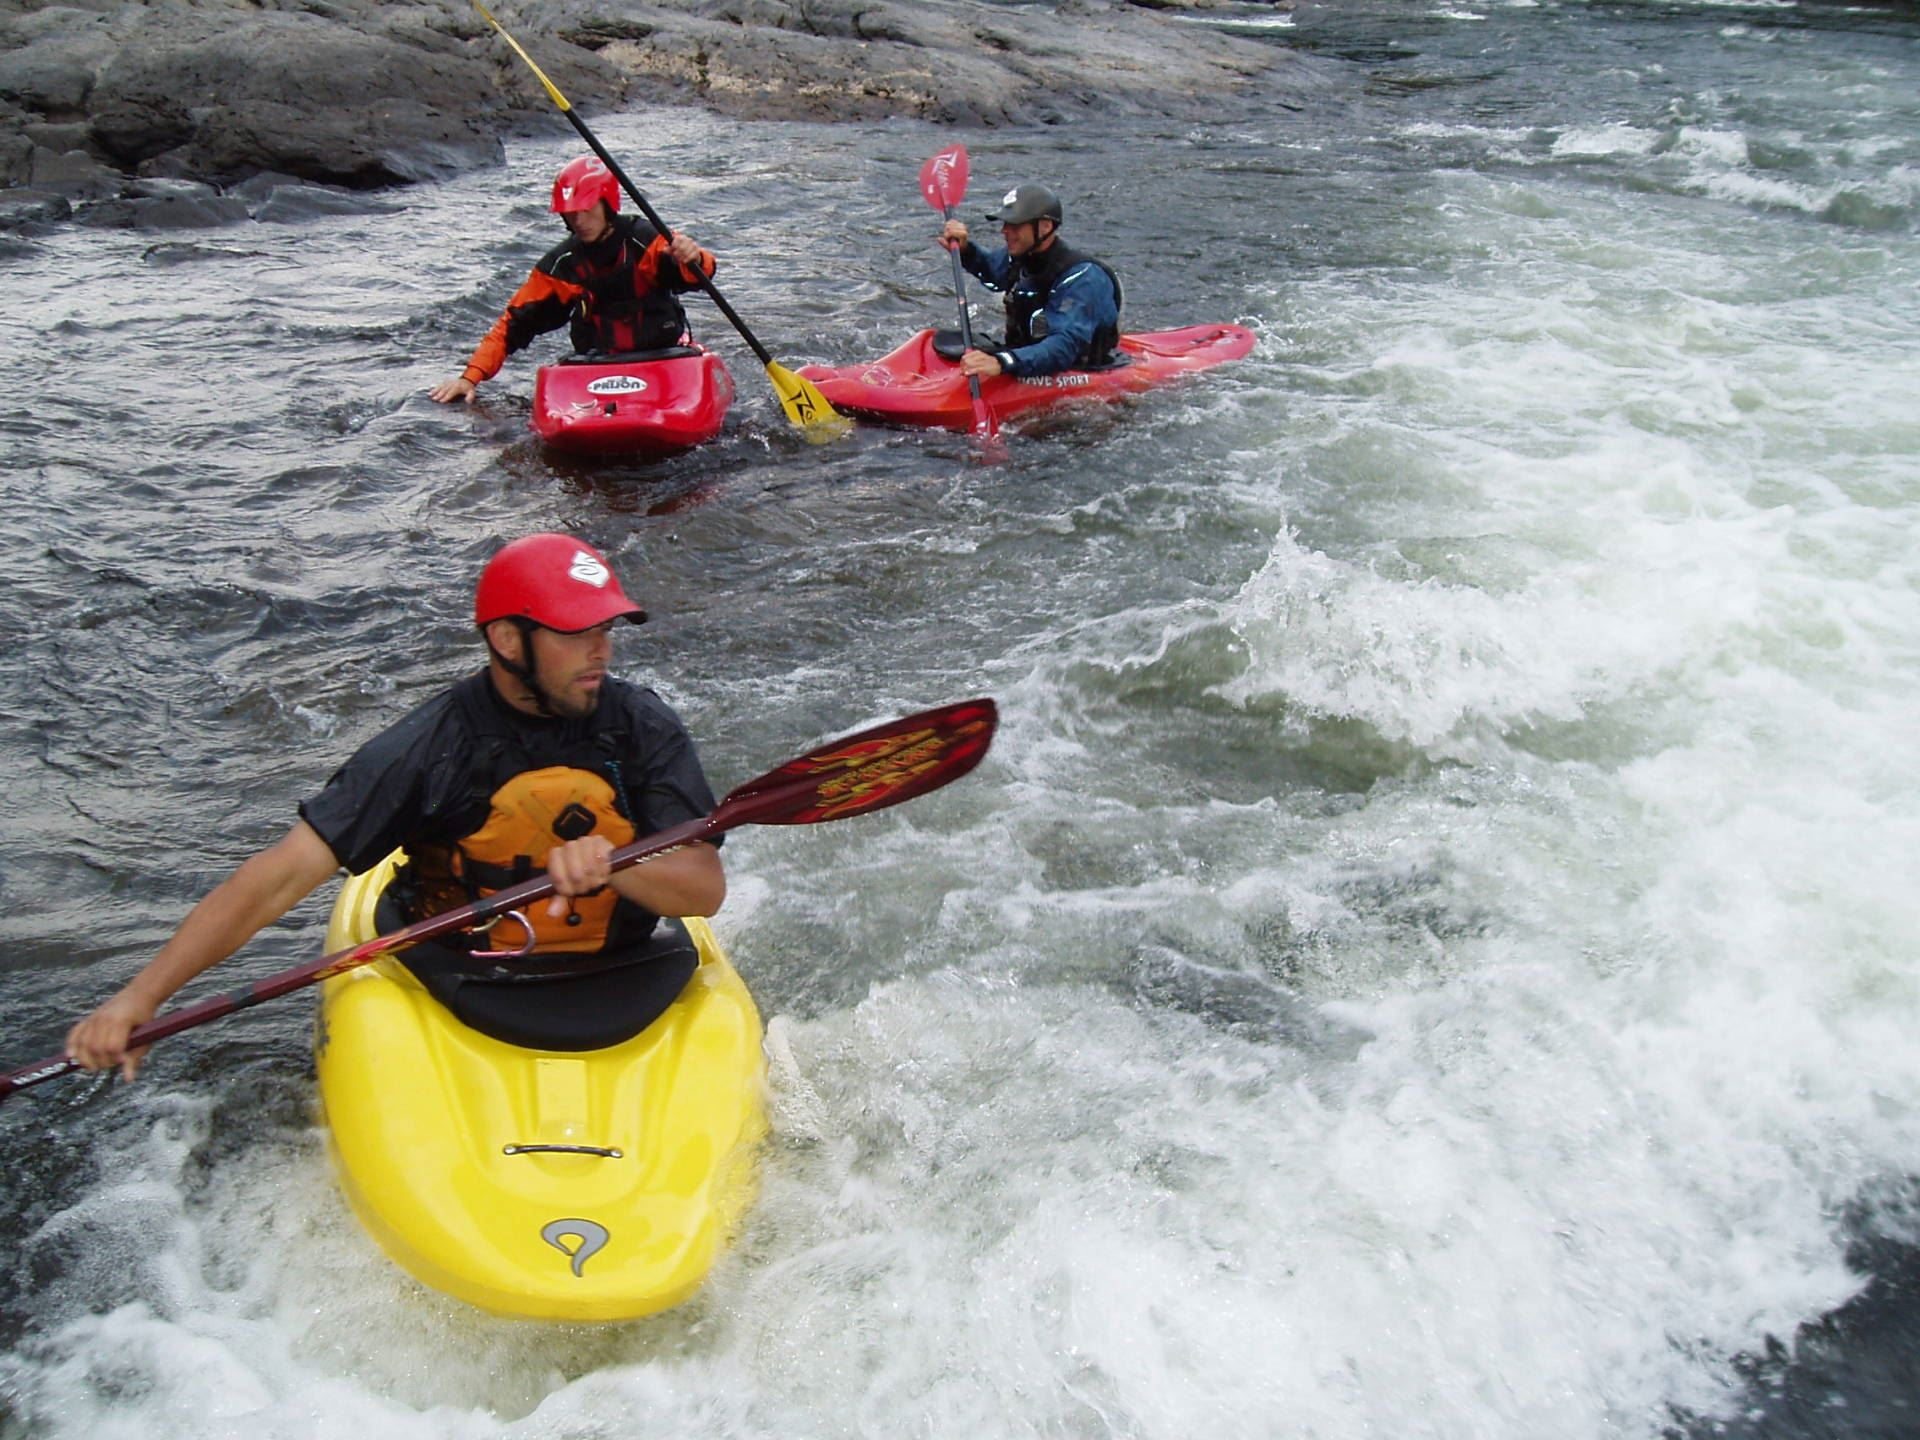 Whitewater kayaking in Brattlandsströmmarna